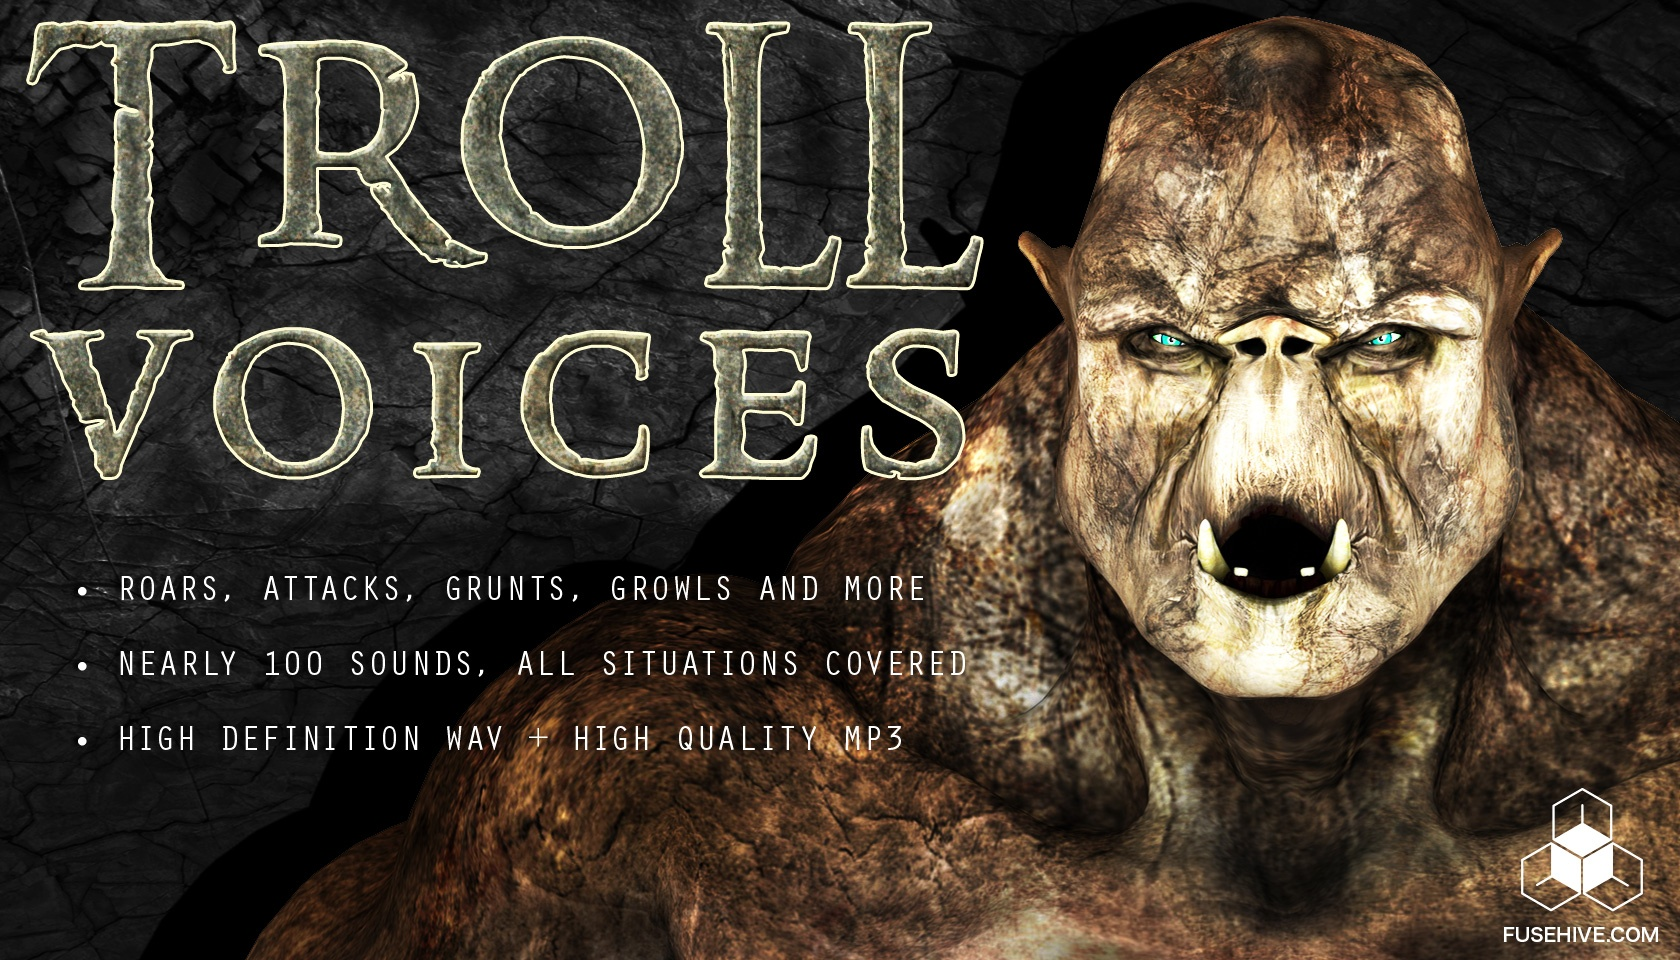 TROLL VOICE - Royalty Free Fantasy Monster Voice Sound Effects Download